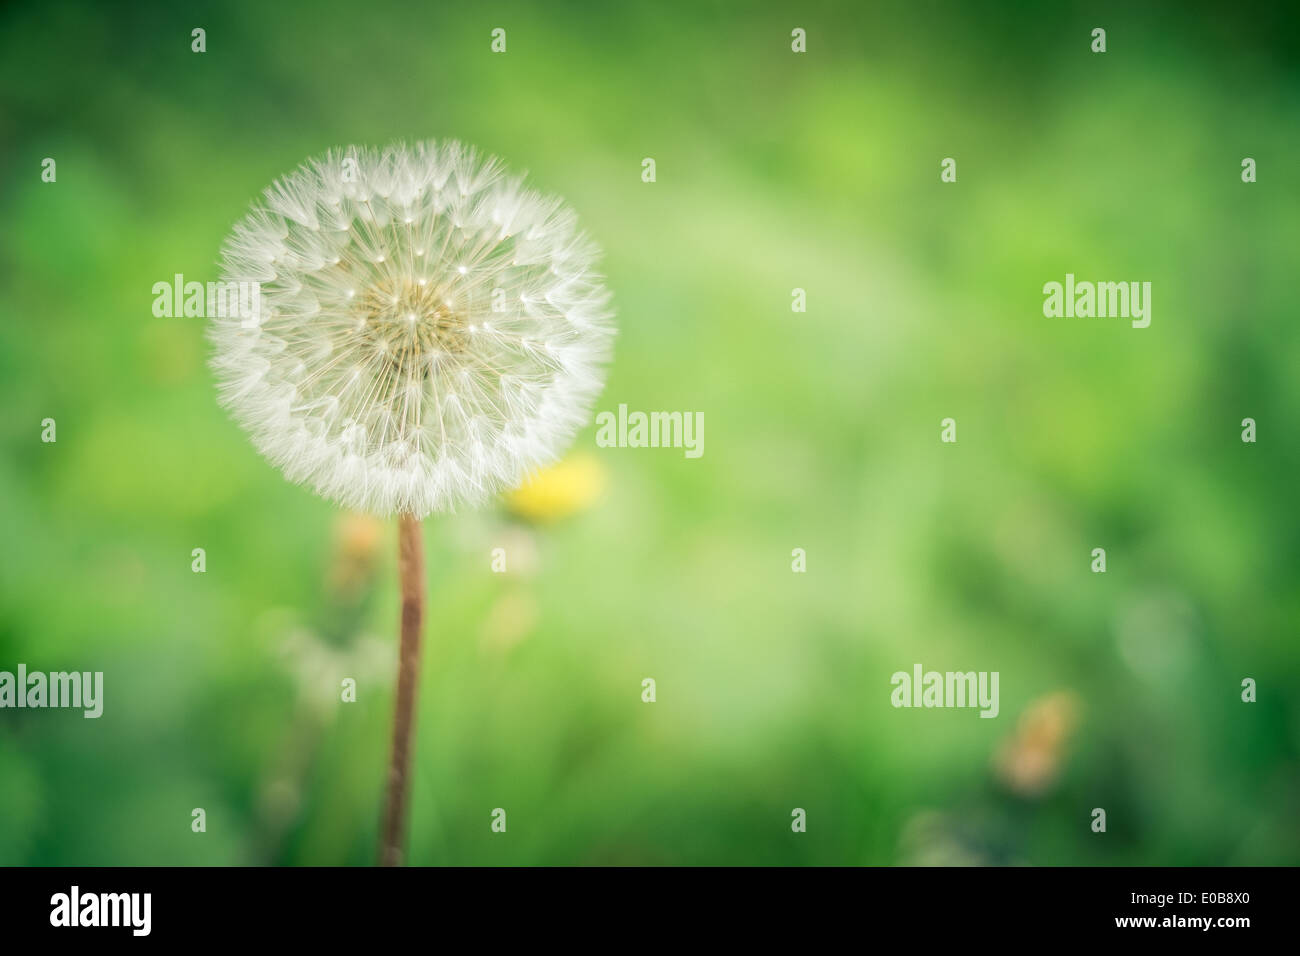 Relaxing natural background with a beautiful dandelion flower - Stock Image